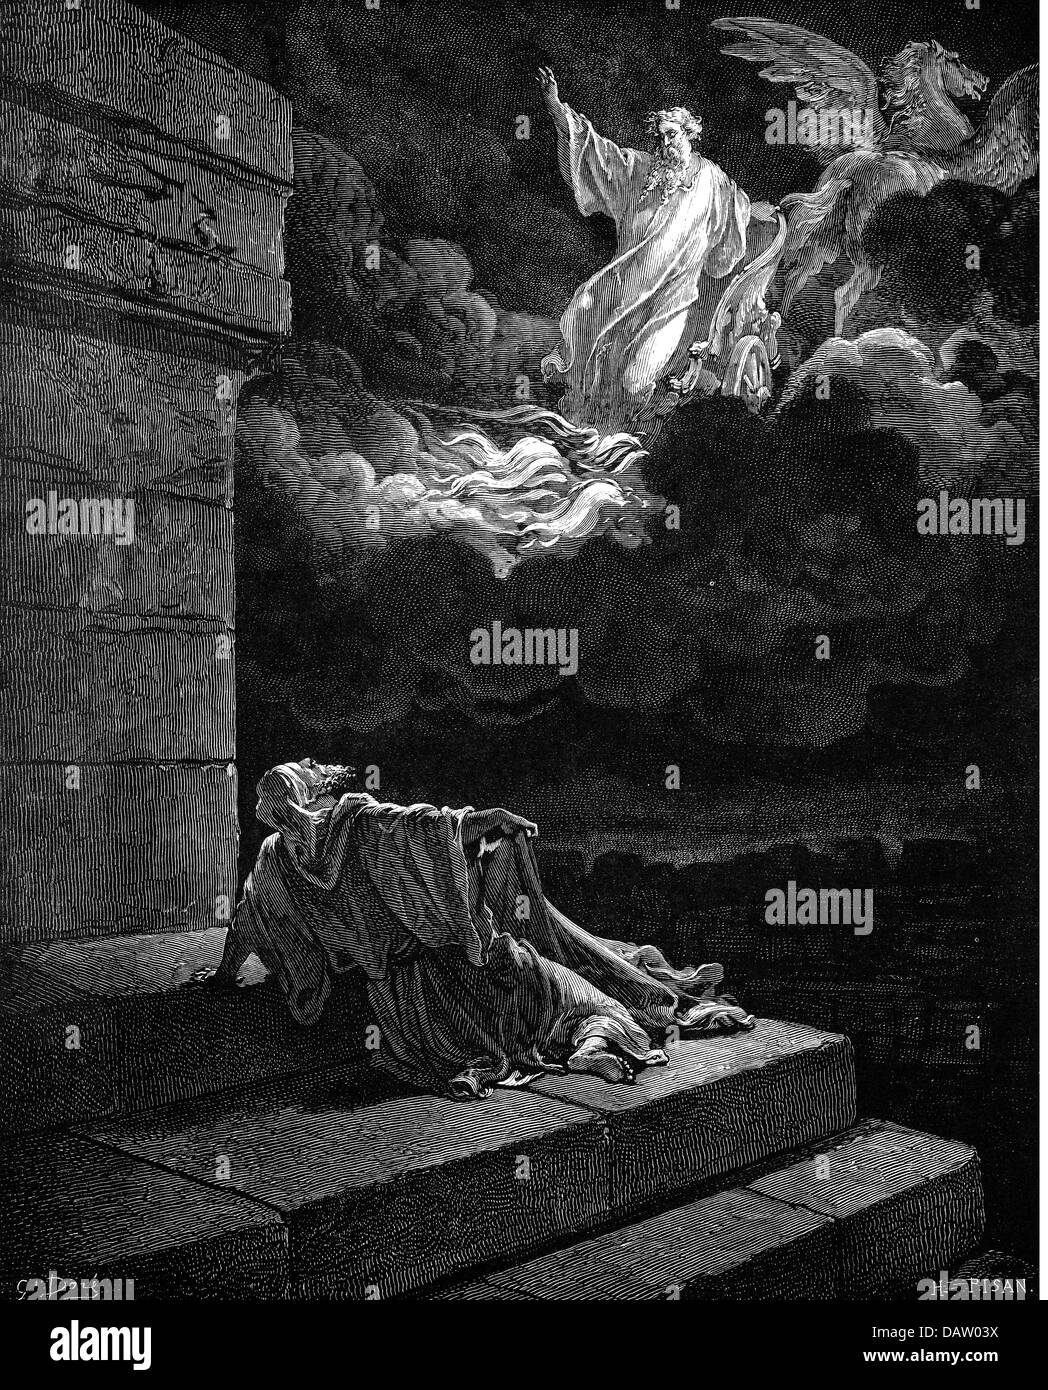 religion, biblical scenes, 'Elias in a chariot of fire', wood engraving to the Bible by Gustave Doré, - Stock Image